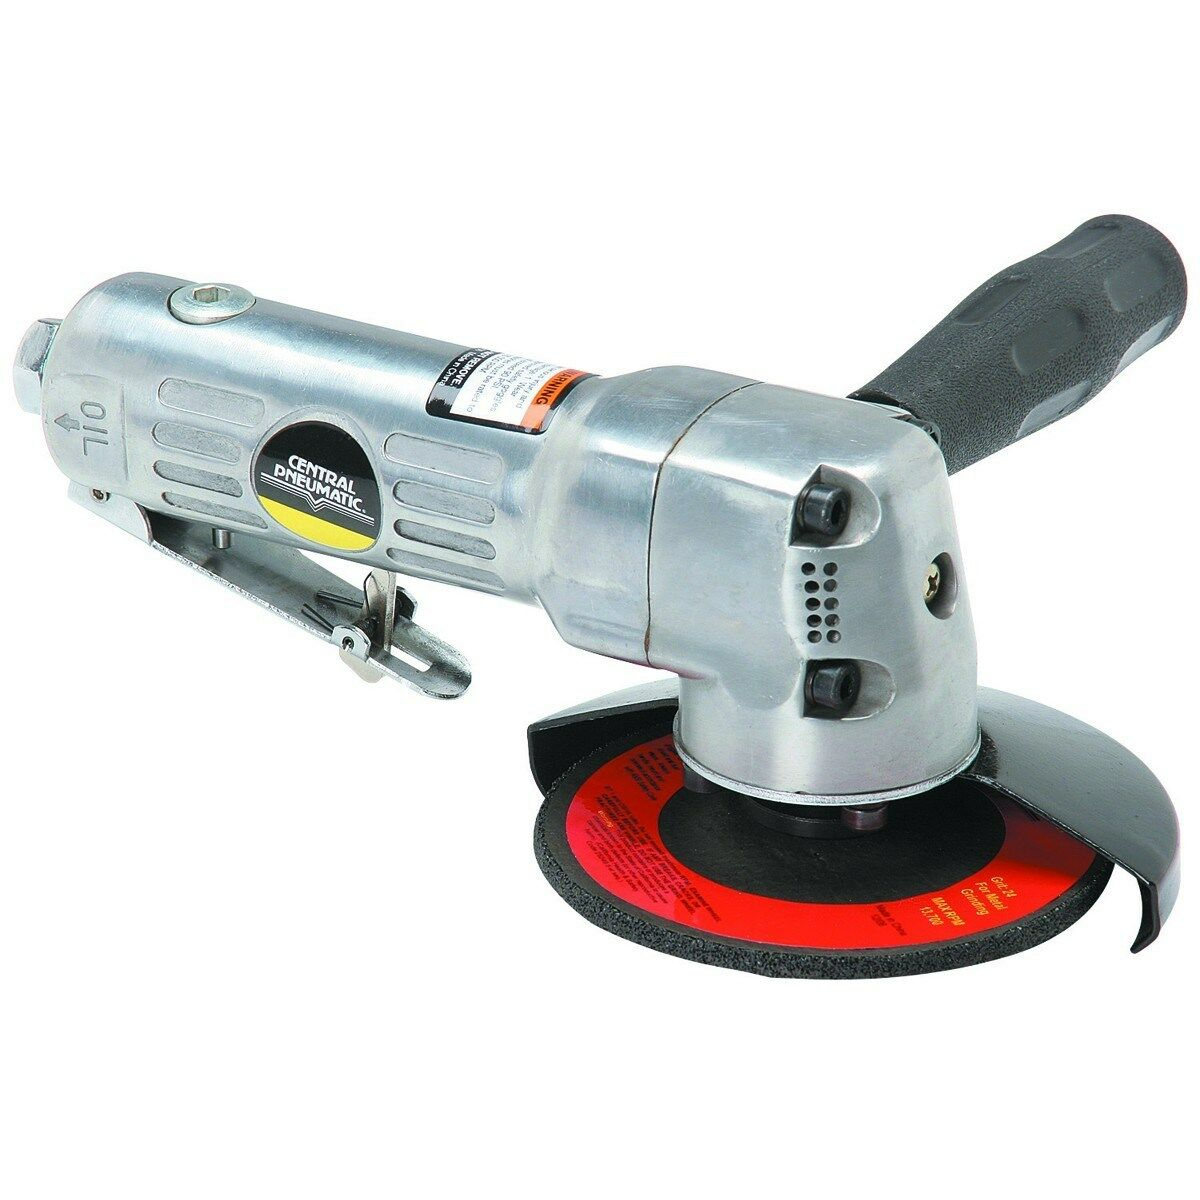 ANSI certified  Central Pneumatic 4 in Air Angle Die Saw Grinder 10,000 RPM